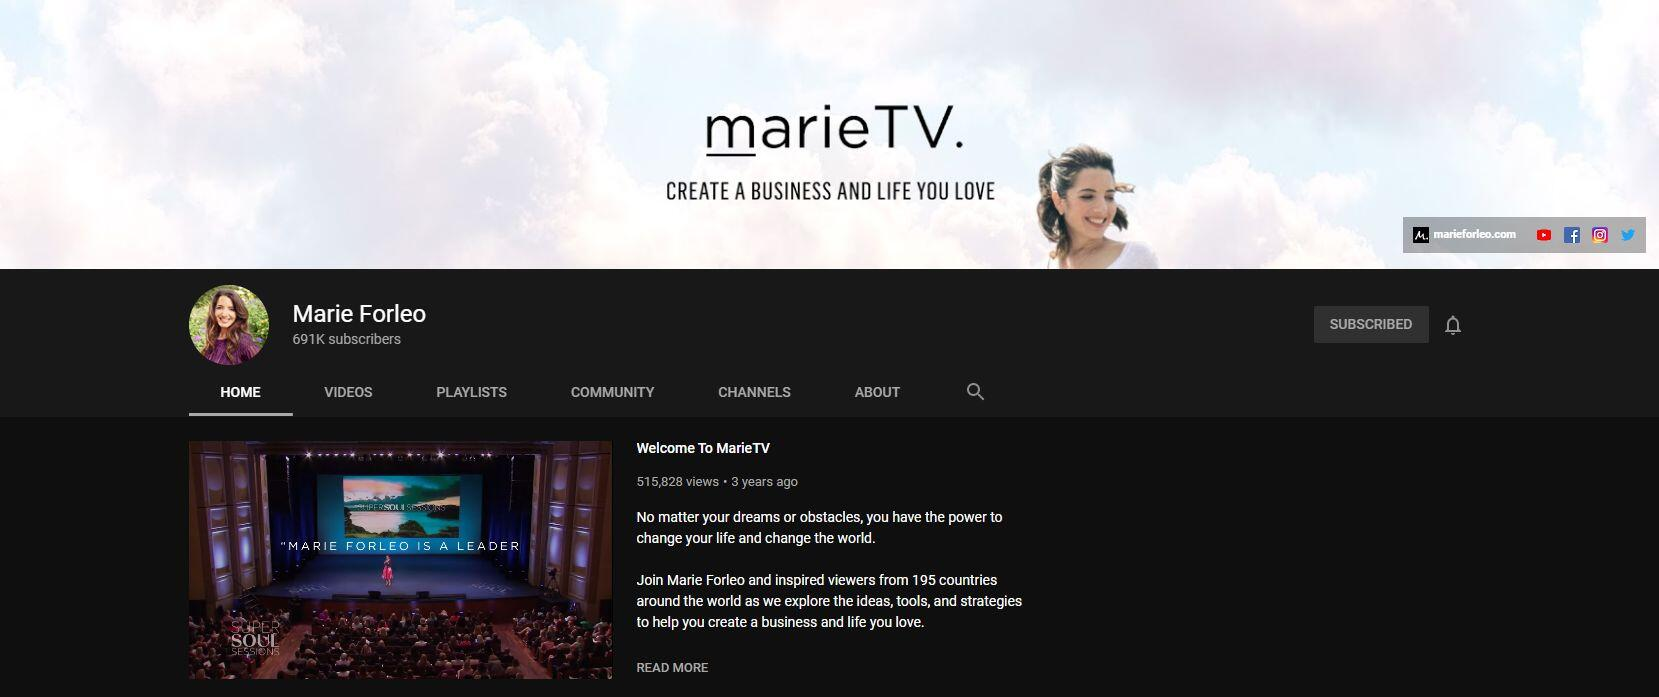 MarieTV Thought Leadership Content Example